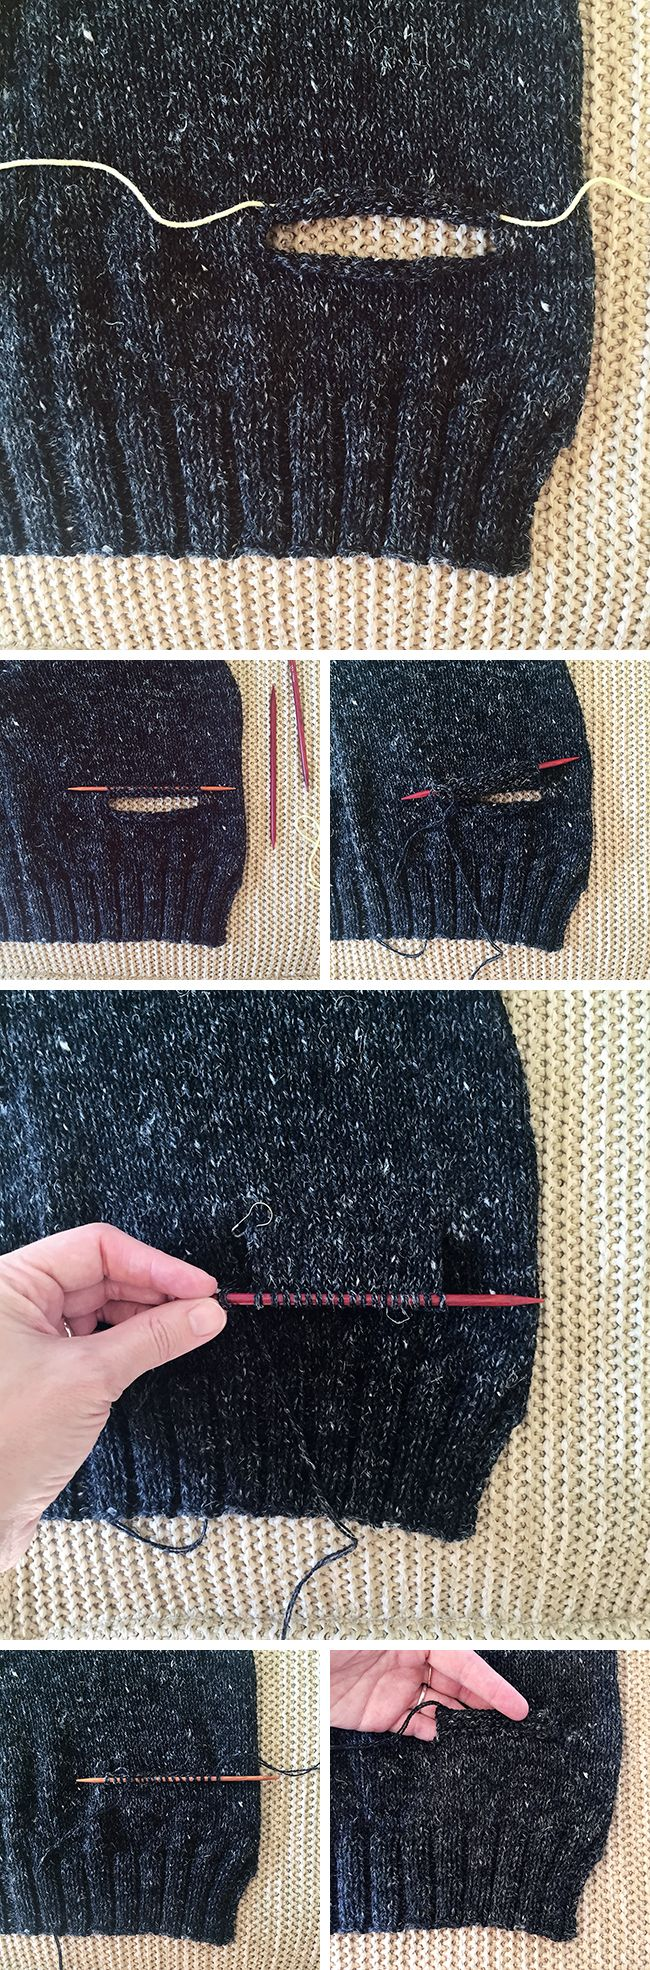 Last February I did a tutorial about how to knit inset pockets on a…